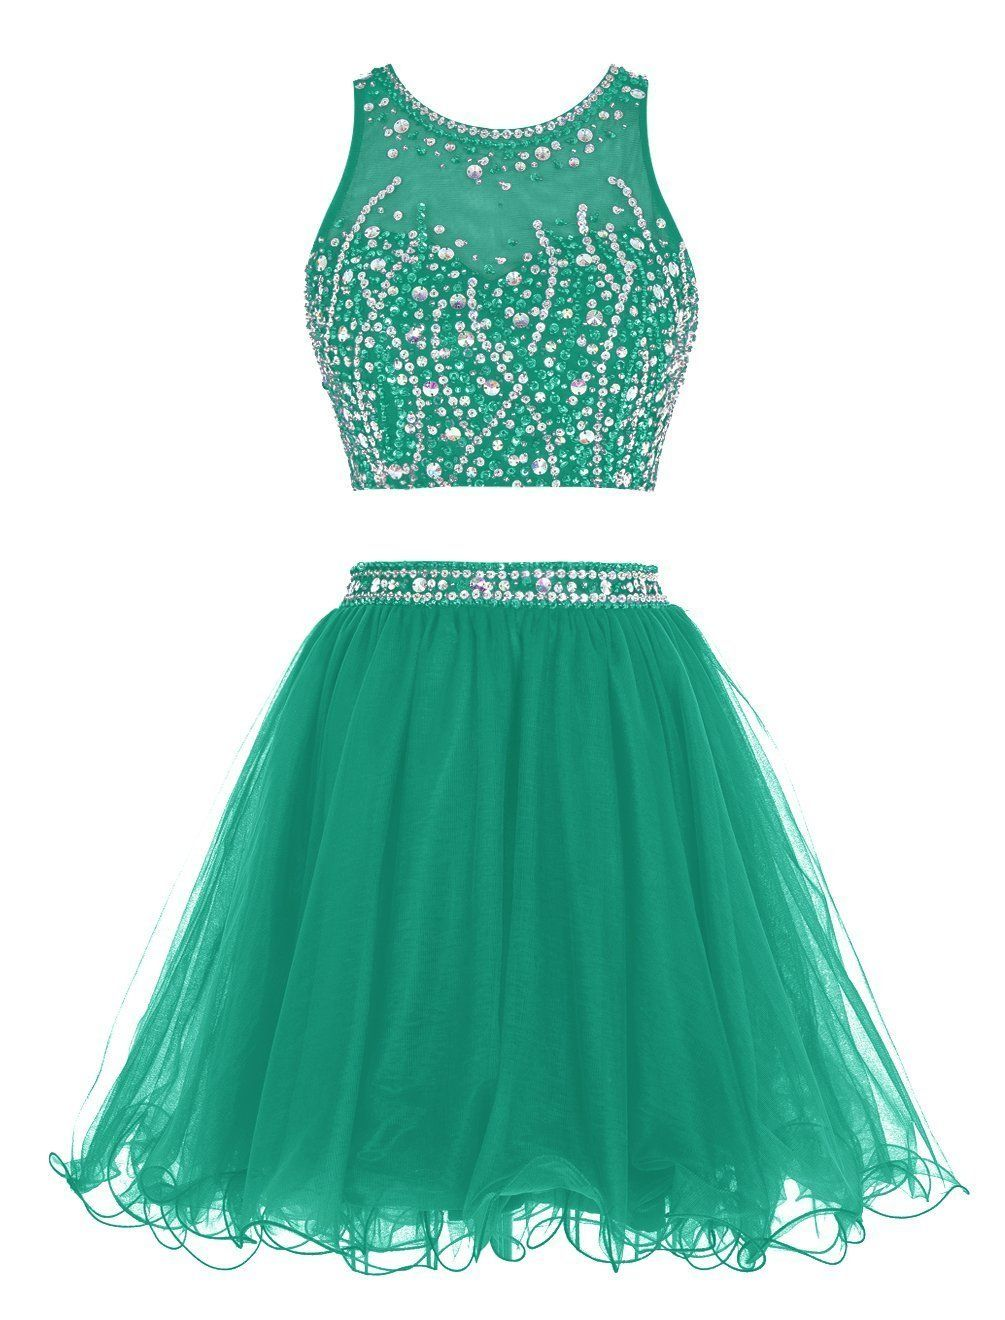 Uryouthstyle green two pieces prom dresses beaded short graduation